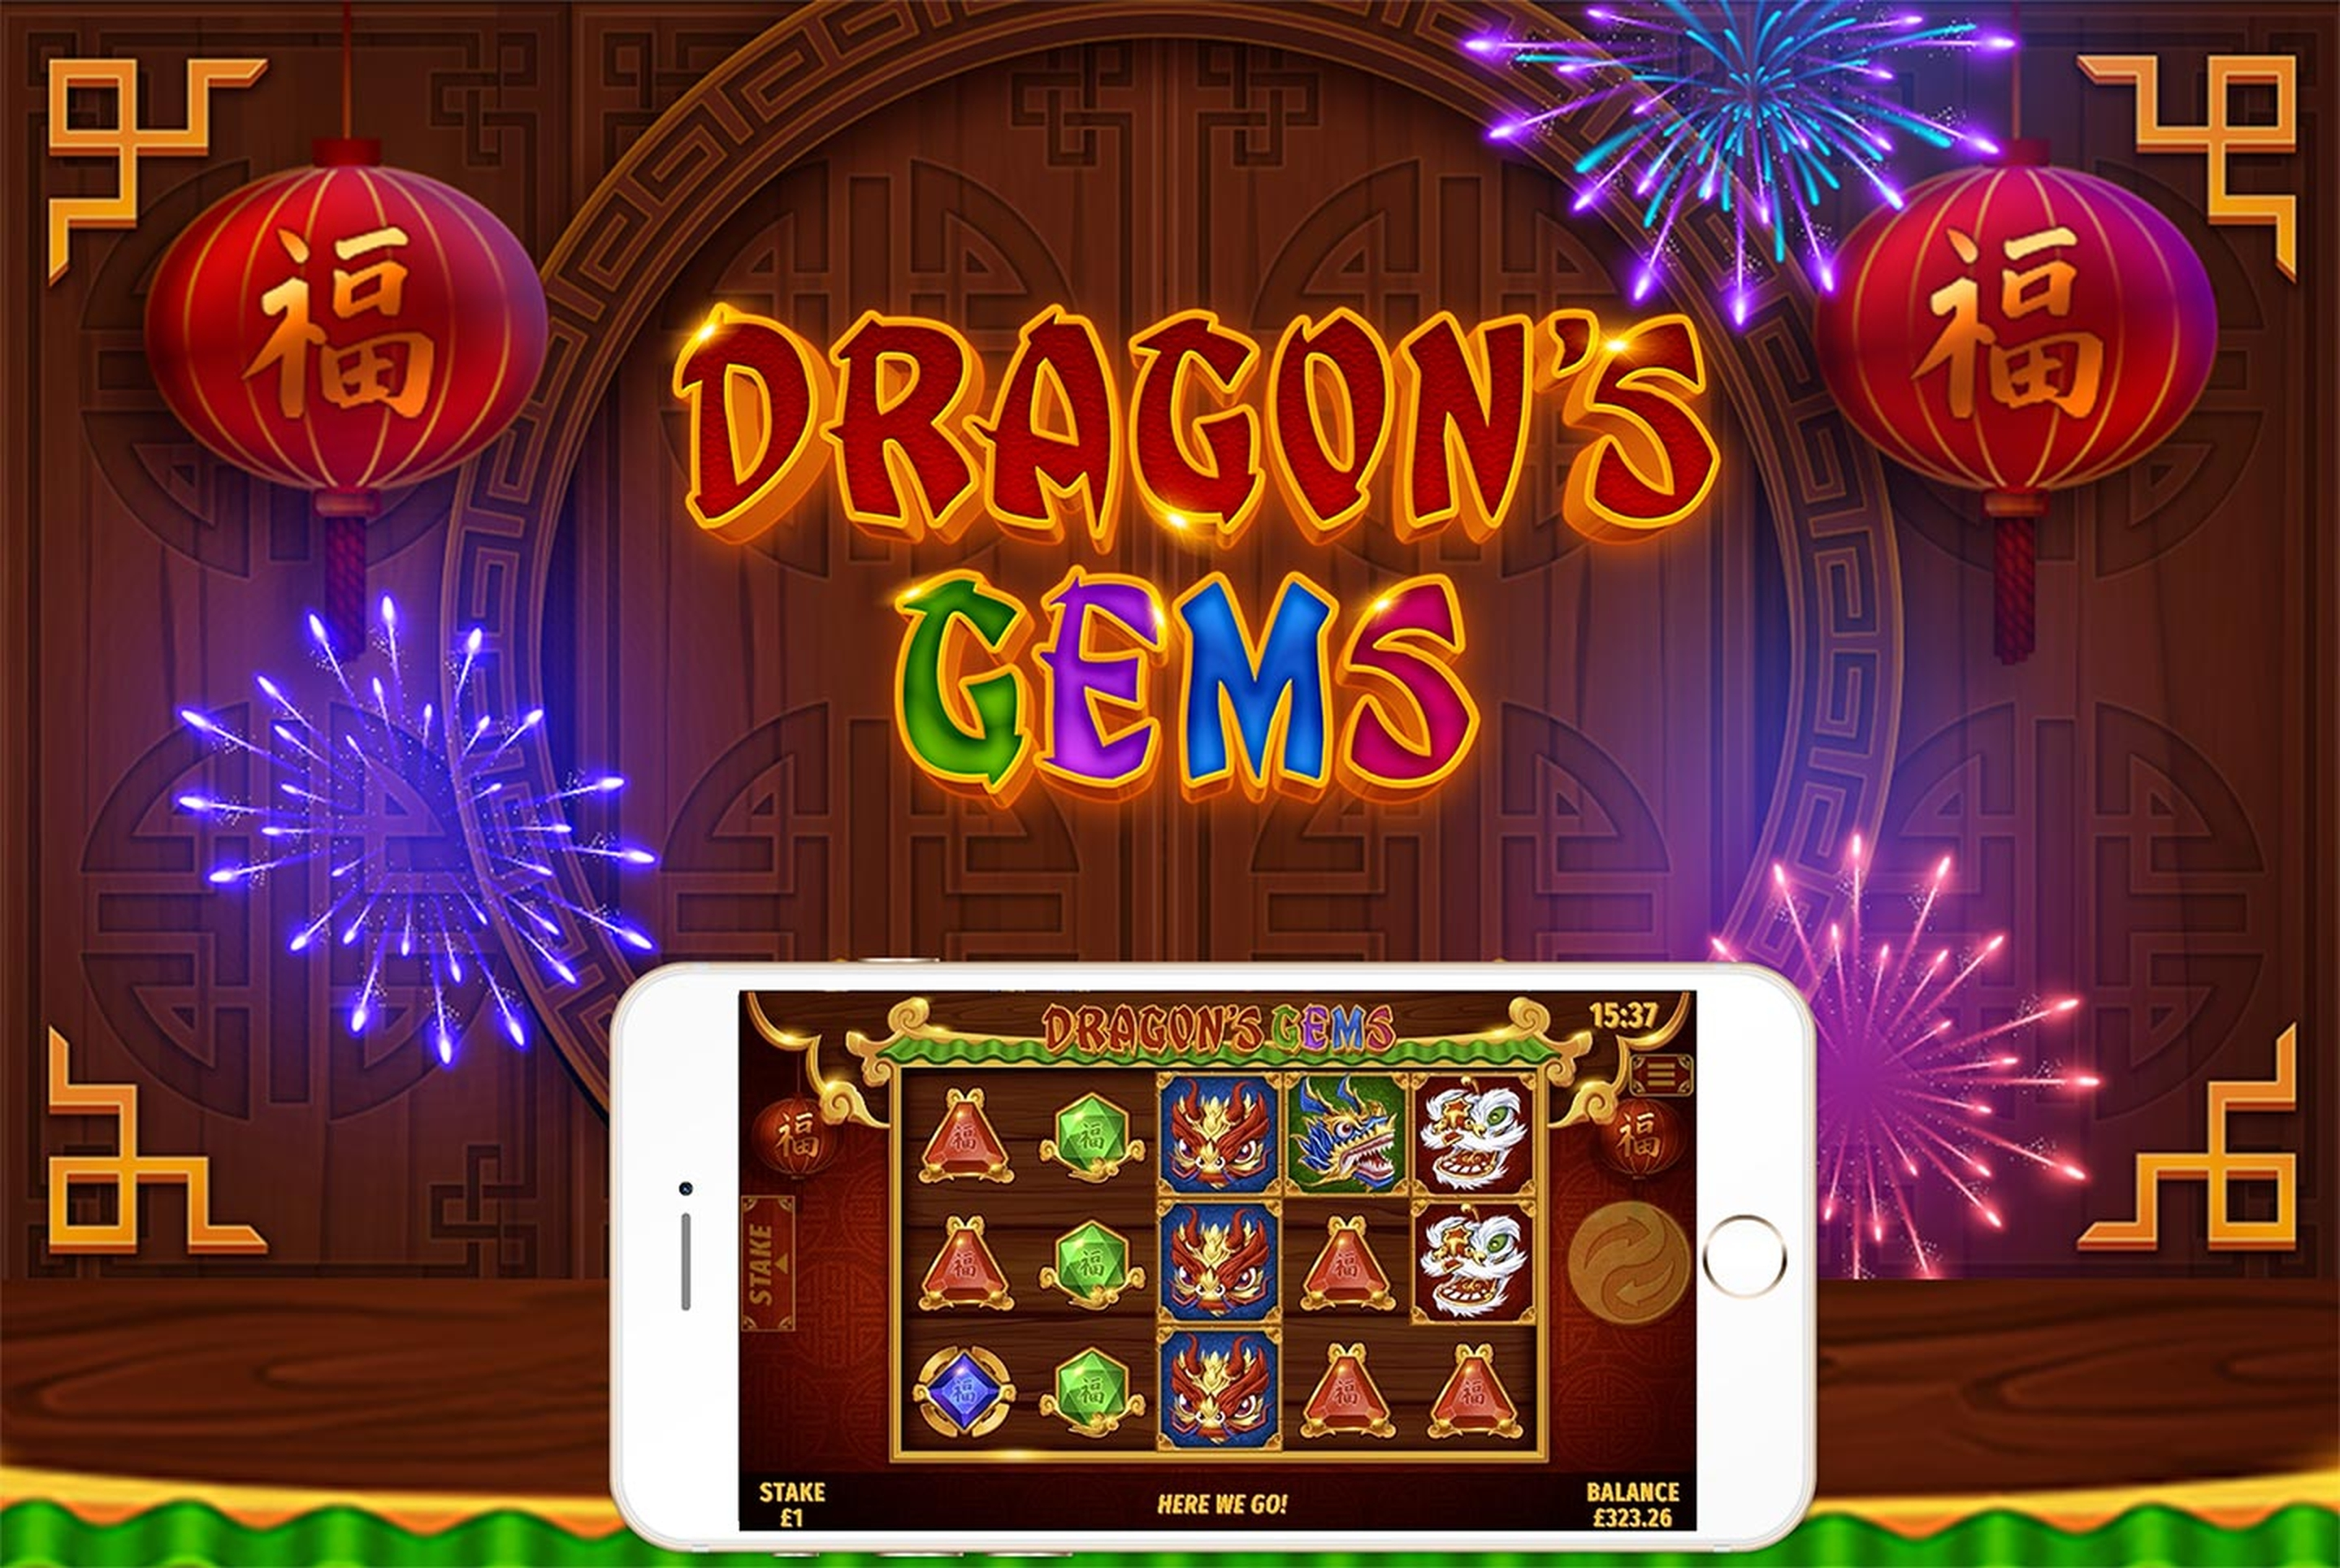 The Dragons Gems Online Slot Demo Game by Slingo